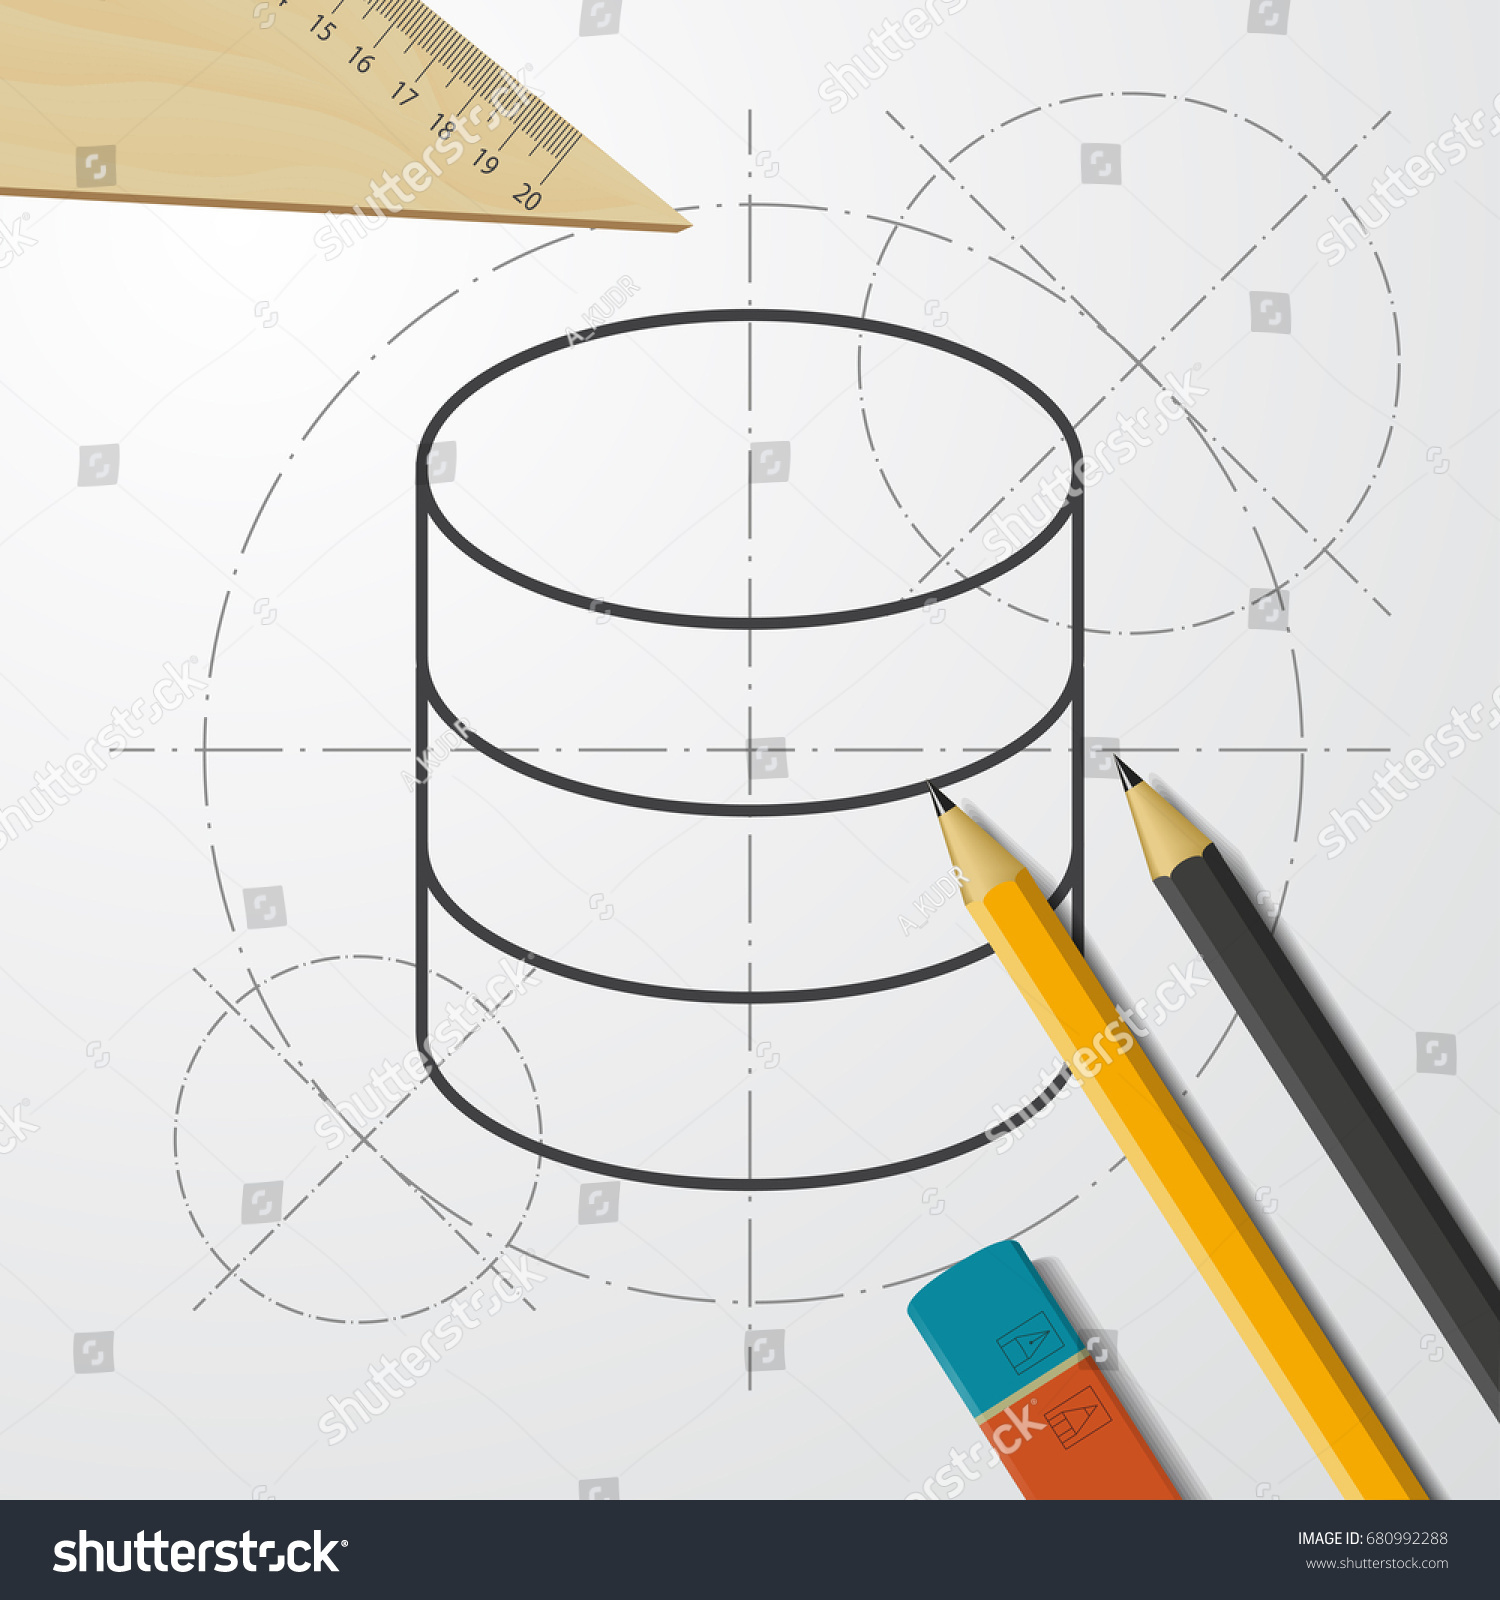 Fantastic blueprint database contemporary electrical and wiring vector blueprint database icon on engineer stock vector 680992288 malvernweather Gallery